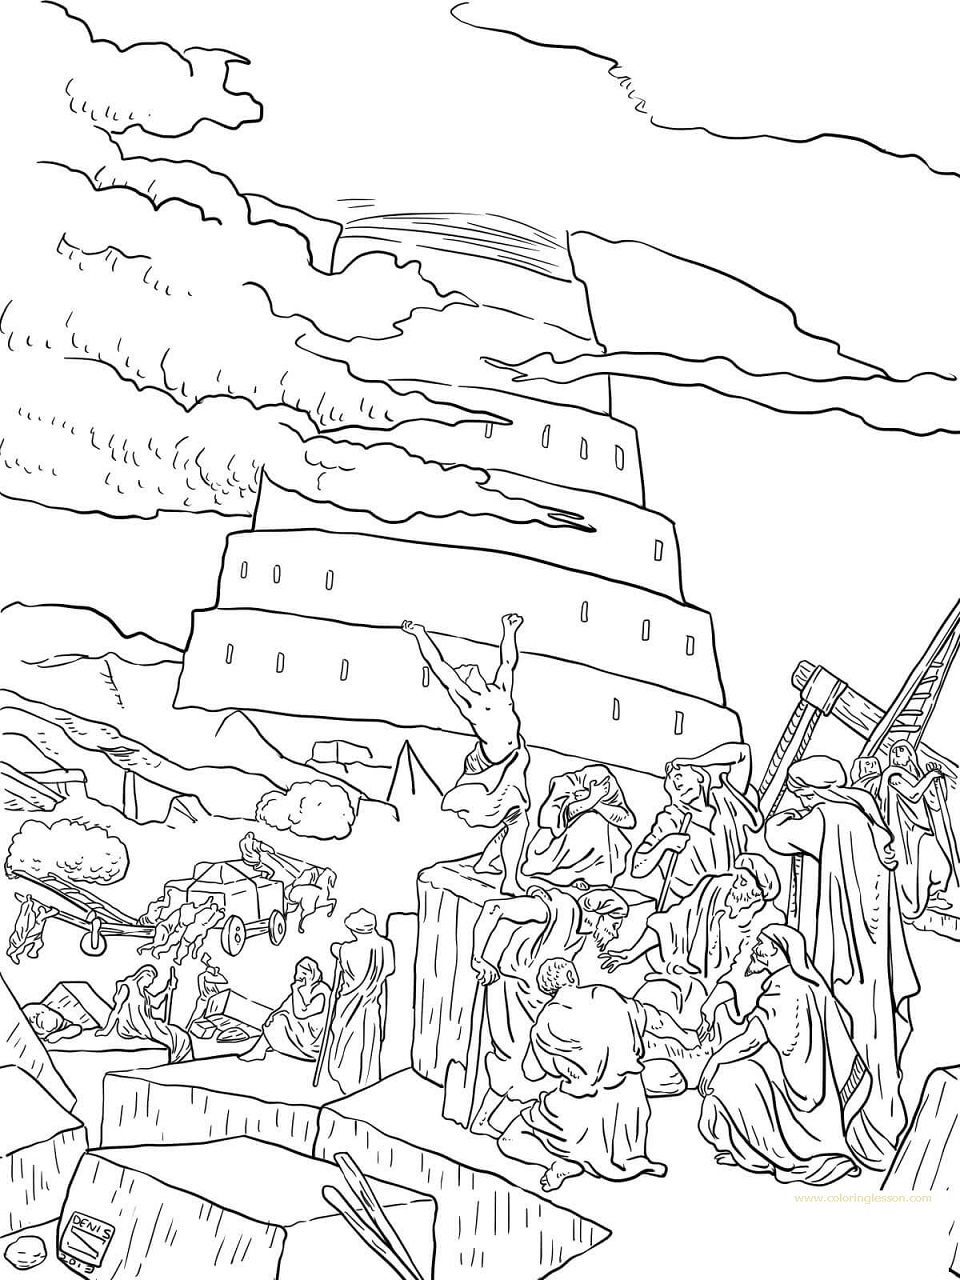 tower of babel coloring pages for kids two man tower of babel coloring page kids play color tower of for coloring kids pages babel